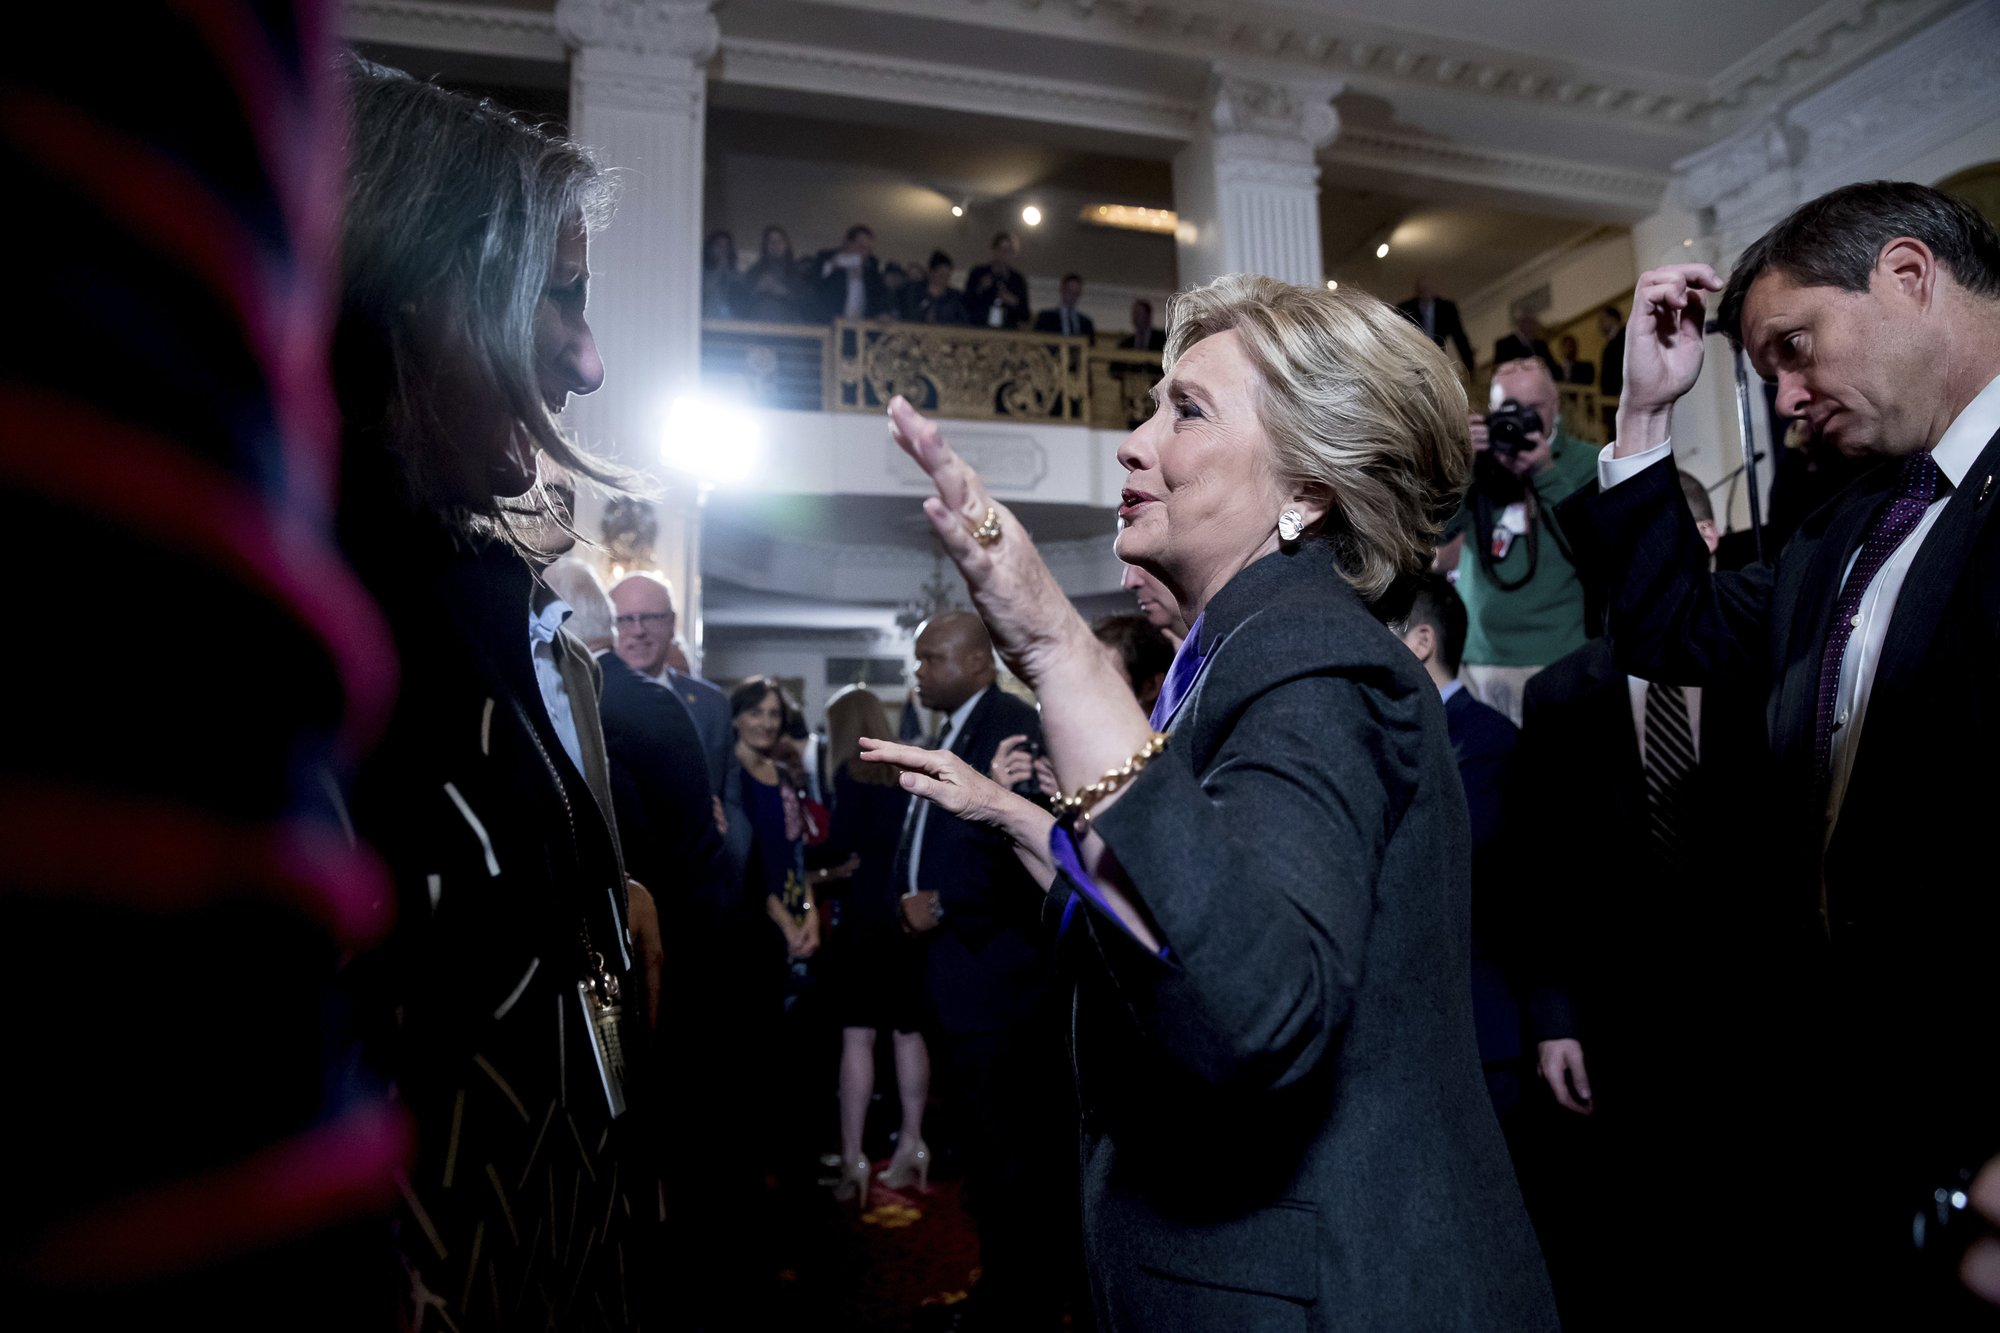 Trump claims mandate; Clinton says give him 'chance to lead'